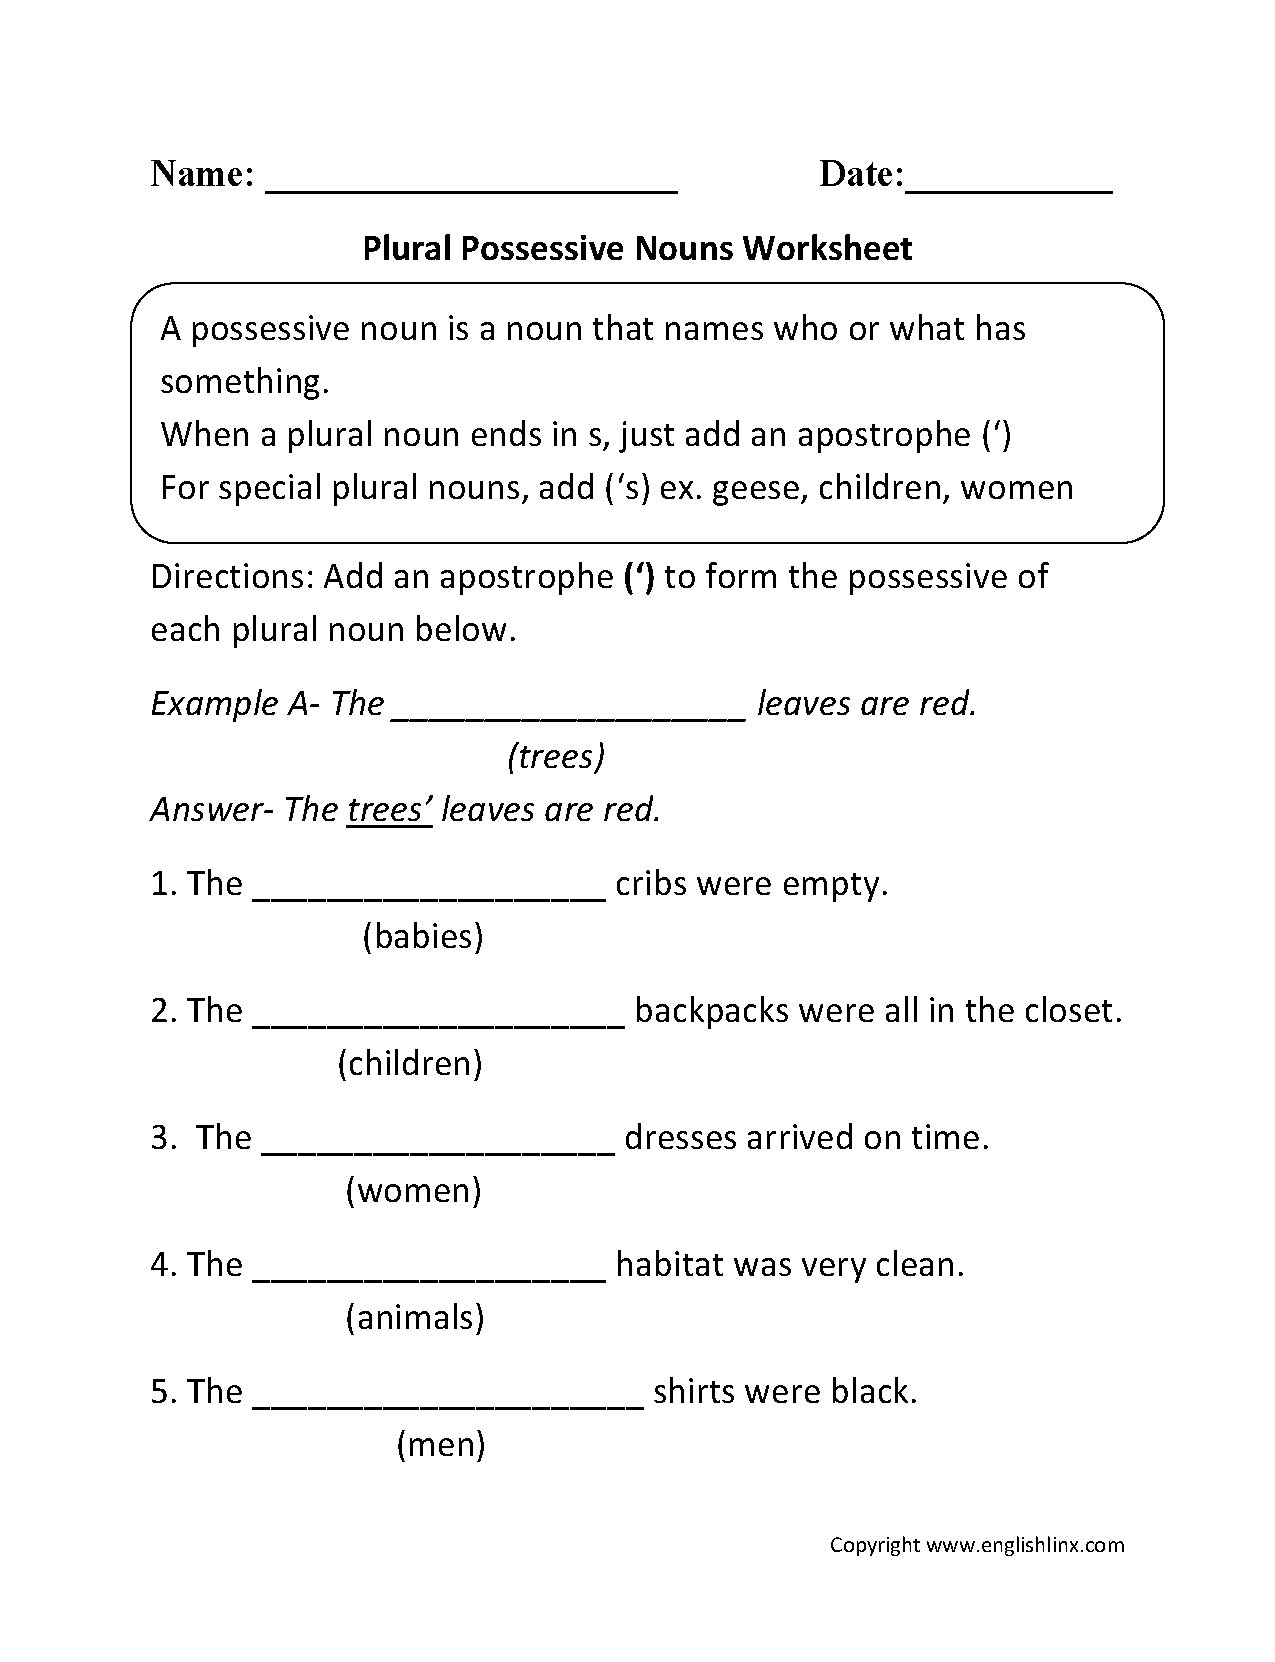 Aldiablosus  Gorgeous Nouns Worksheets  Possessive Nouns Worksheets With Glamorous Possessive Nouns Worksheets With Easy On The Eye Objective Pronouns Worksheet Also Math Worksheets Games In Addition Multiplying Fractions Worksheet Th Grade And Long E Worksheets For First Grade As Well As Geoboard Worksheets Additionally Th Grade Worksheets Free From Englishlinxcom With Aldiablosus  Glamorous Nouns Worksheets  Possessive Nouns Worksheets With Easy On The Eye Possessive Nouns Worksheets And Gorgeous Objective Pronouns Worksheet Also Math Worksheets Games In Addition Multiplying Fractions Worksheet Th Grade From Englishlinxcom